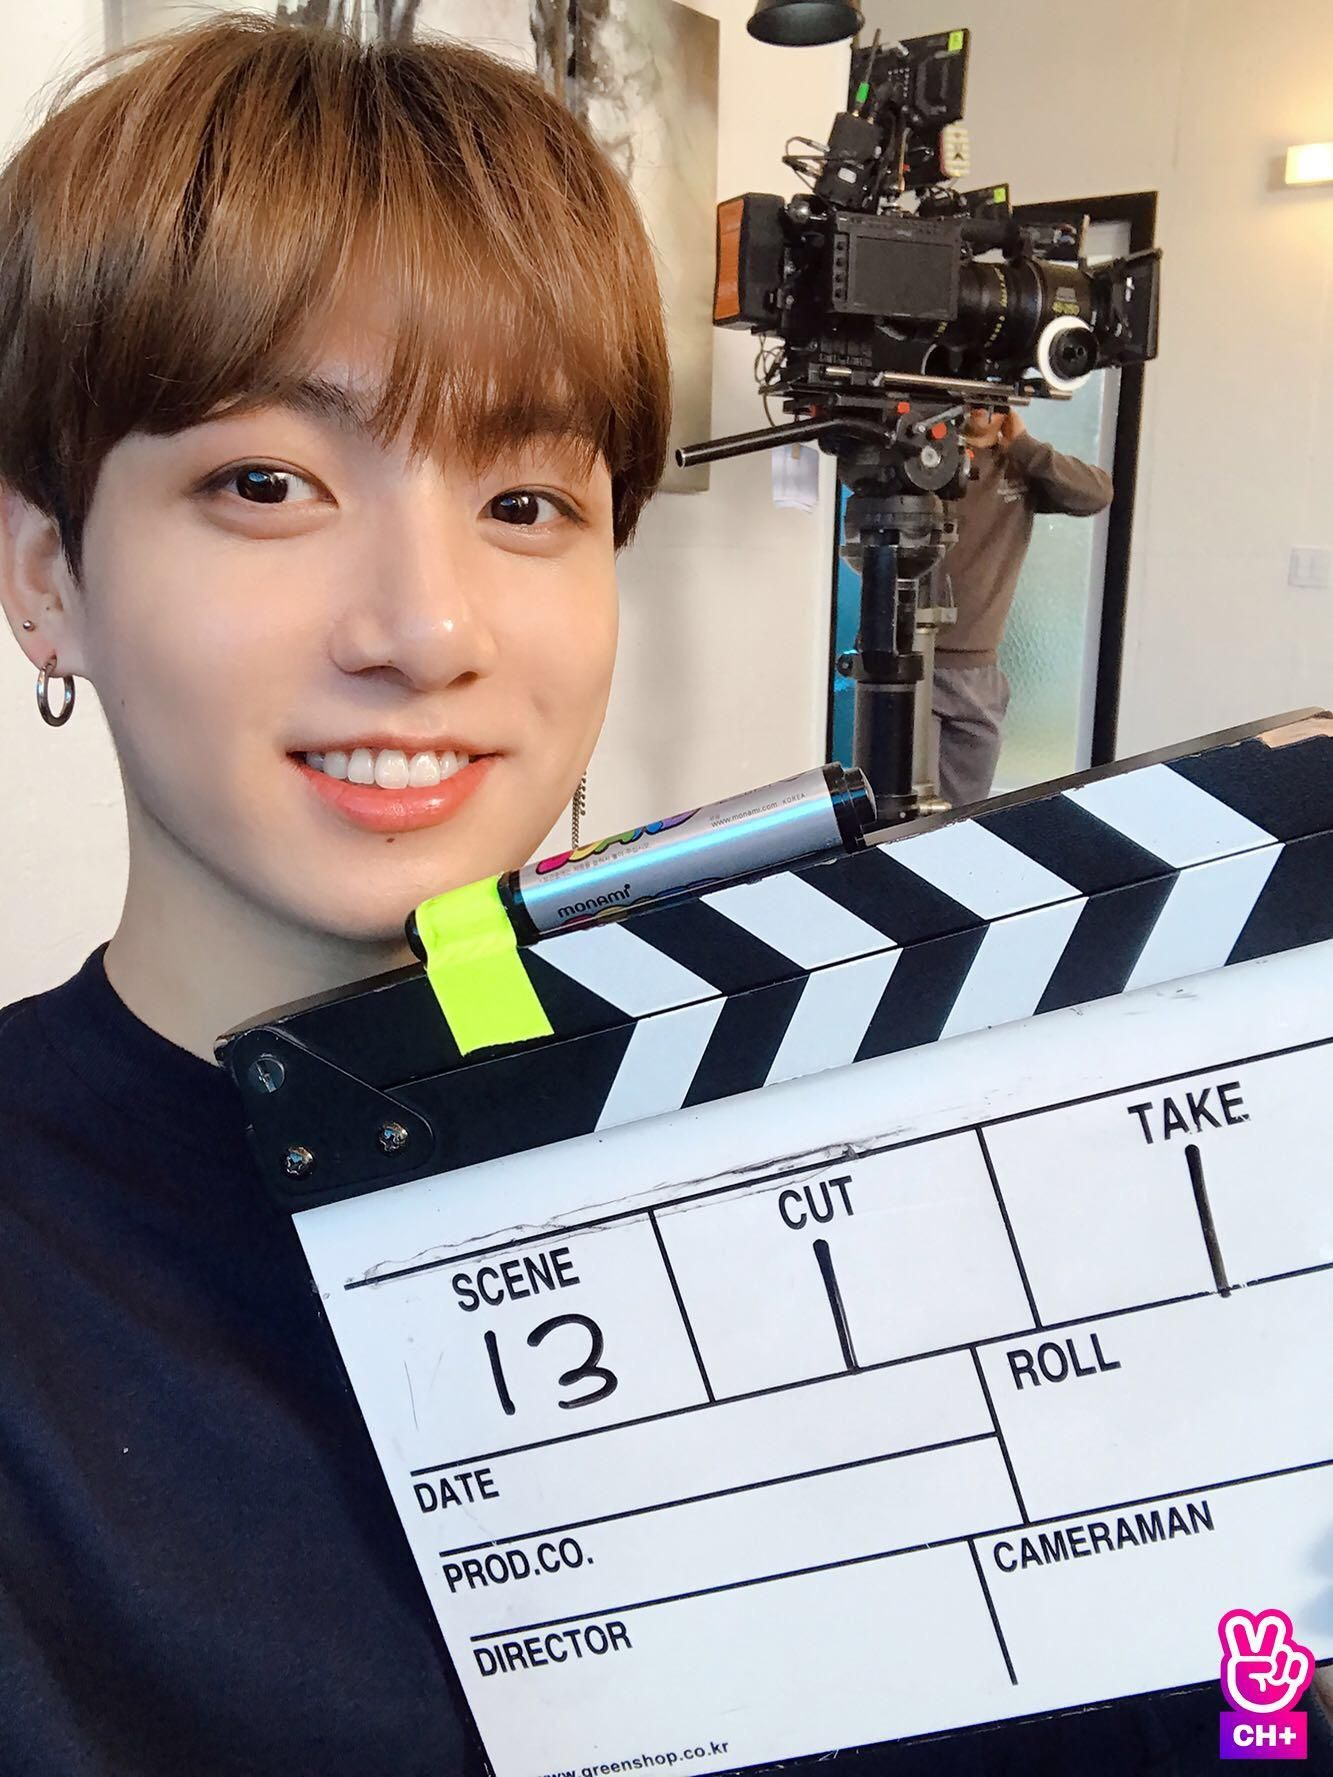 190618•[BTS V OFFICIAL] - RUN BTS! 2019 - Epi.76 Behind the scene #BTS #방탄소년단 #JUNGKOOK #전정국 #btsselca